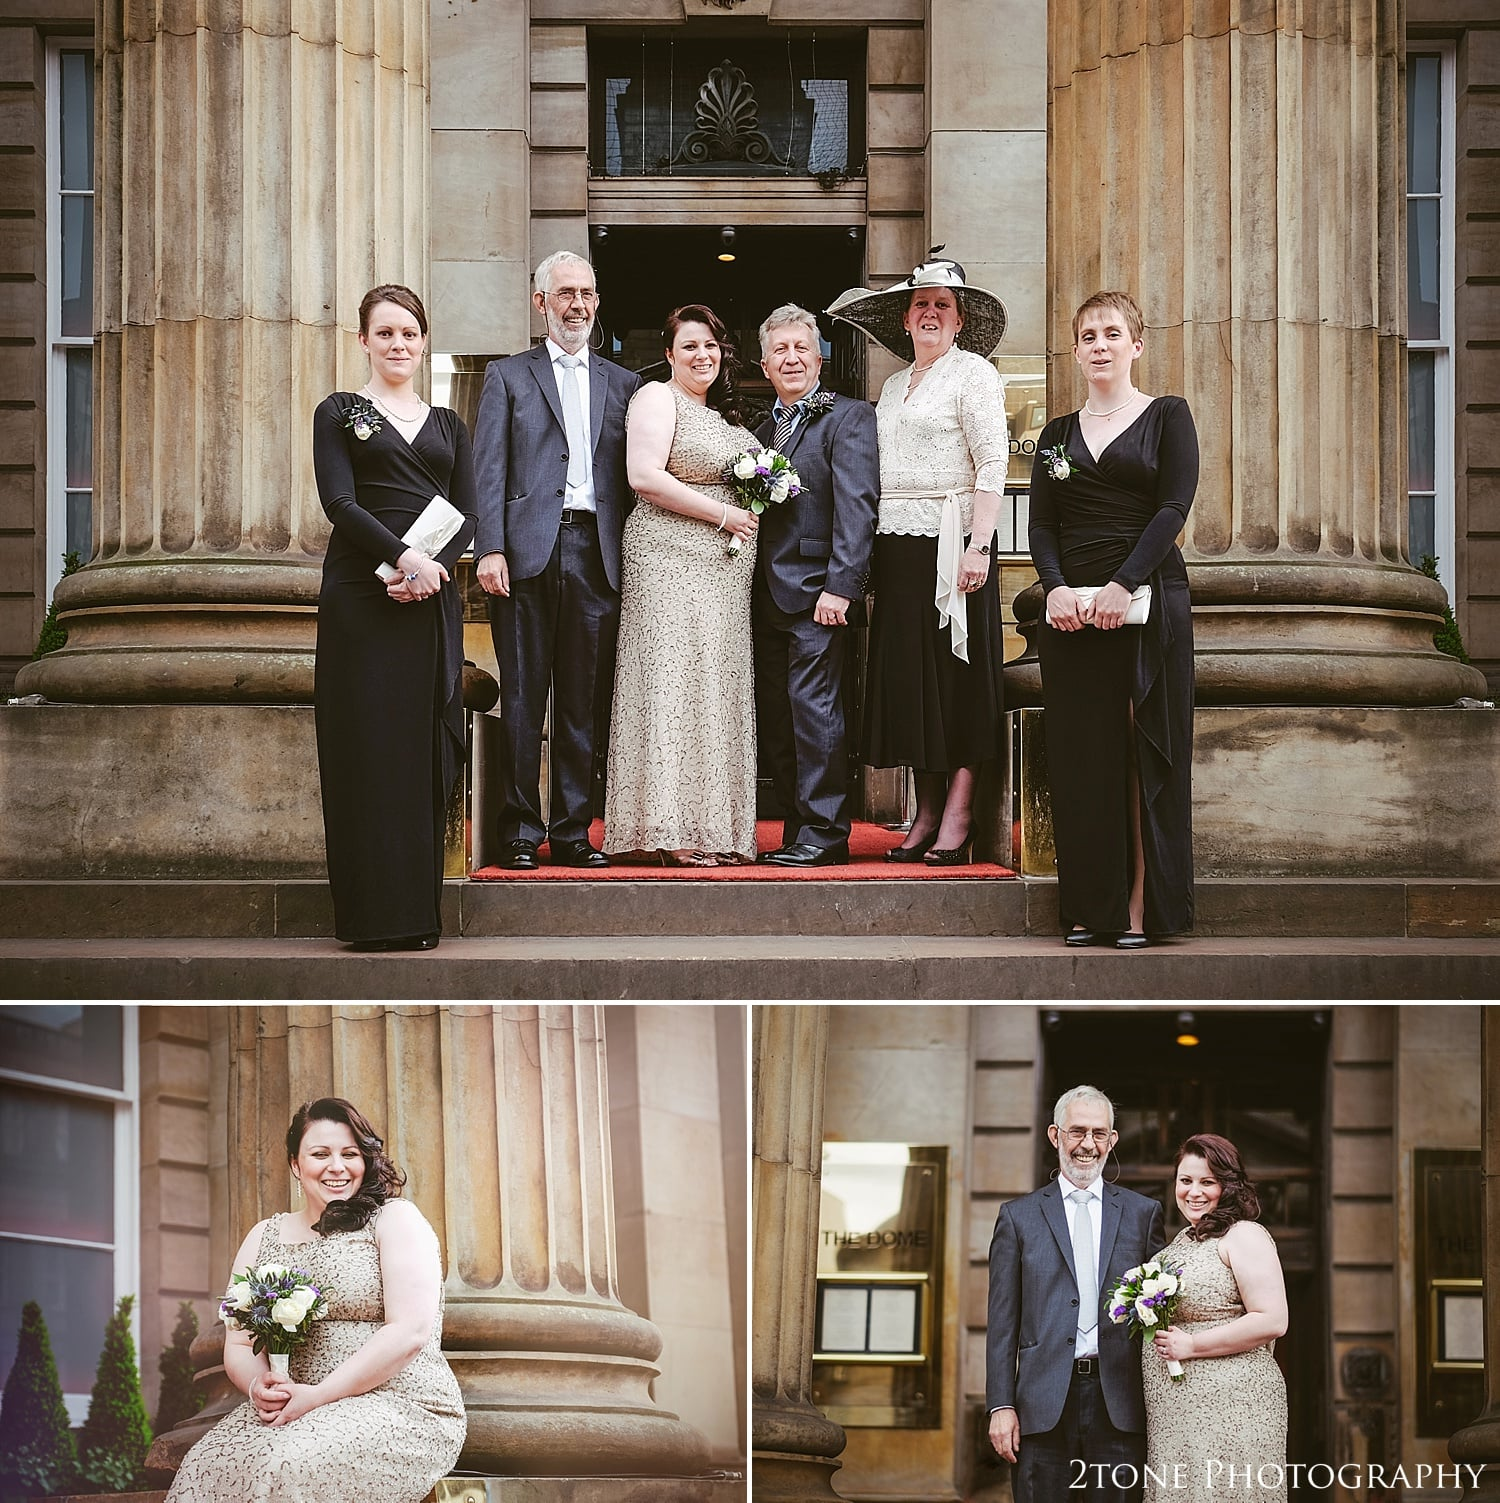 Wedding group shots at the Dome in Edinburgh.  Photography by 2tone Photography